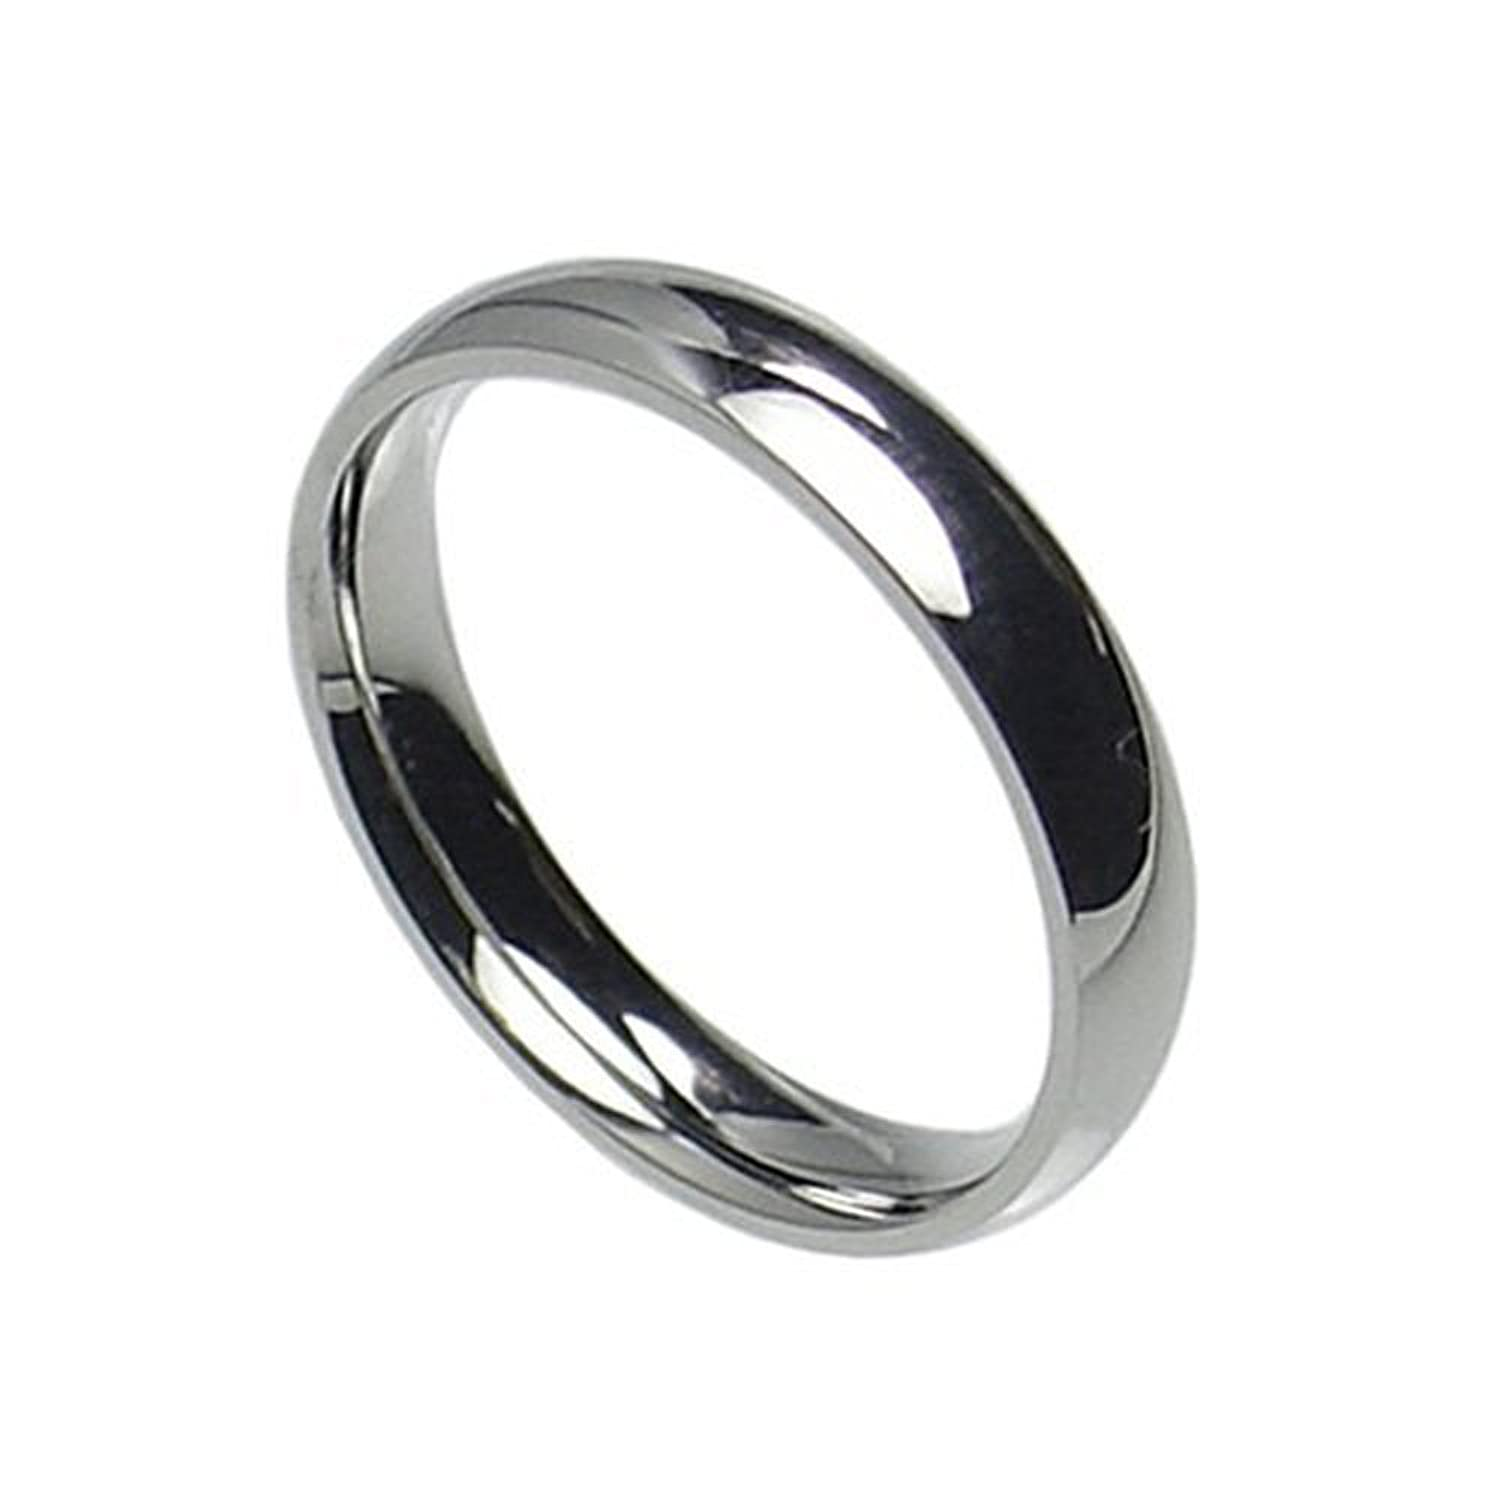 5mm Stainless Steel fort Fit Plain Wedding Band Ring Size 5 13